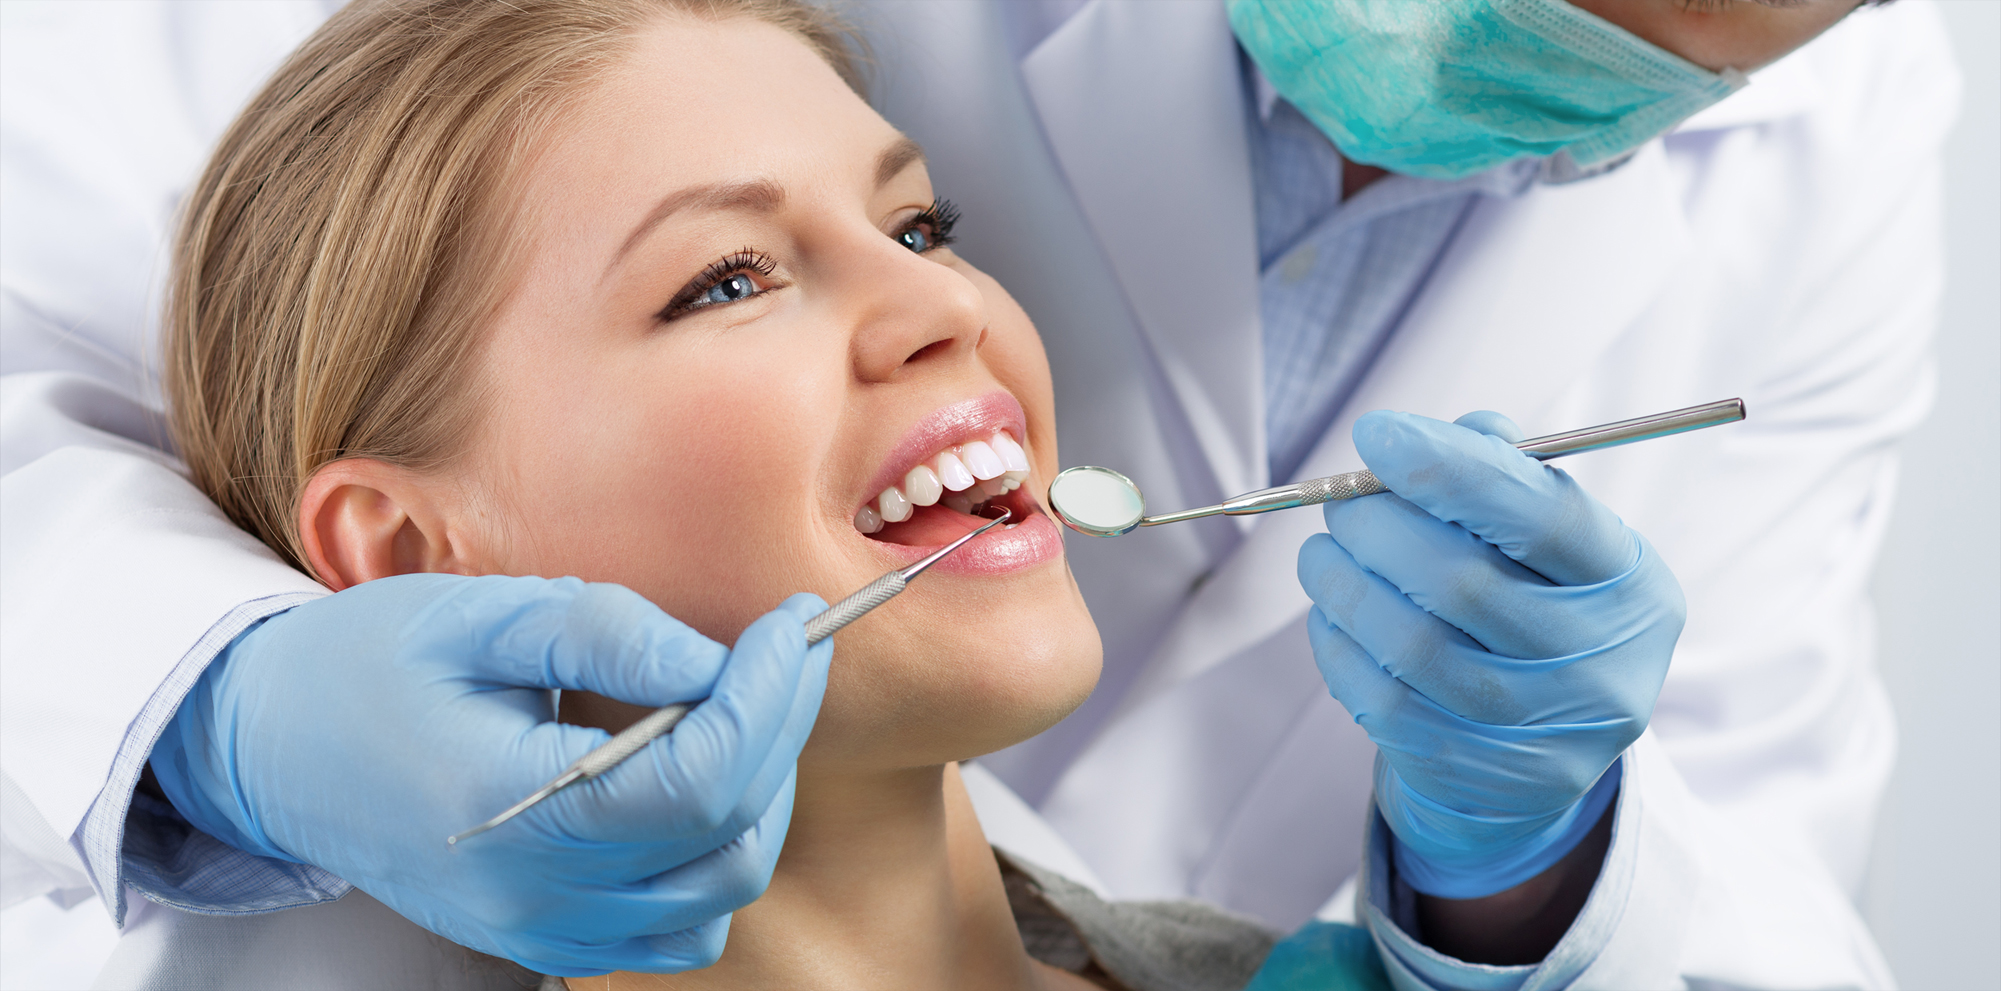 We are the best dentistry in Sydney CBD for teeth cleaning.